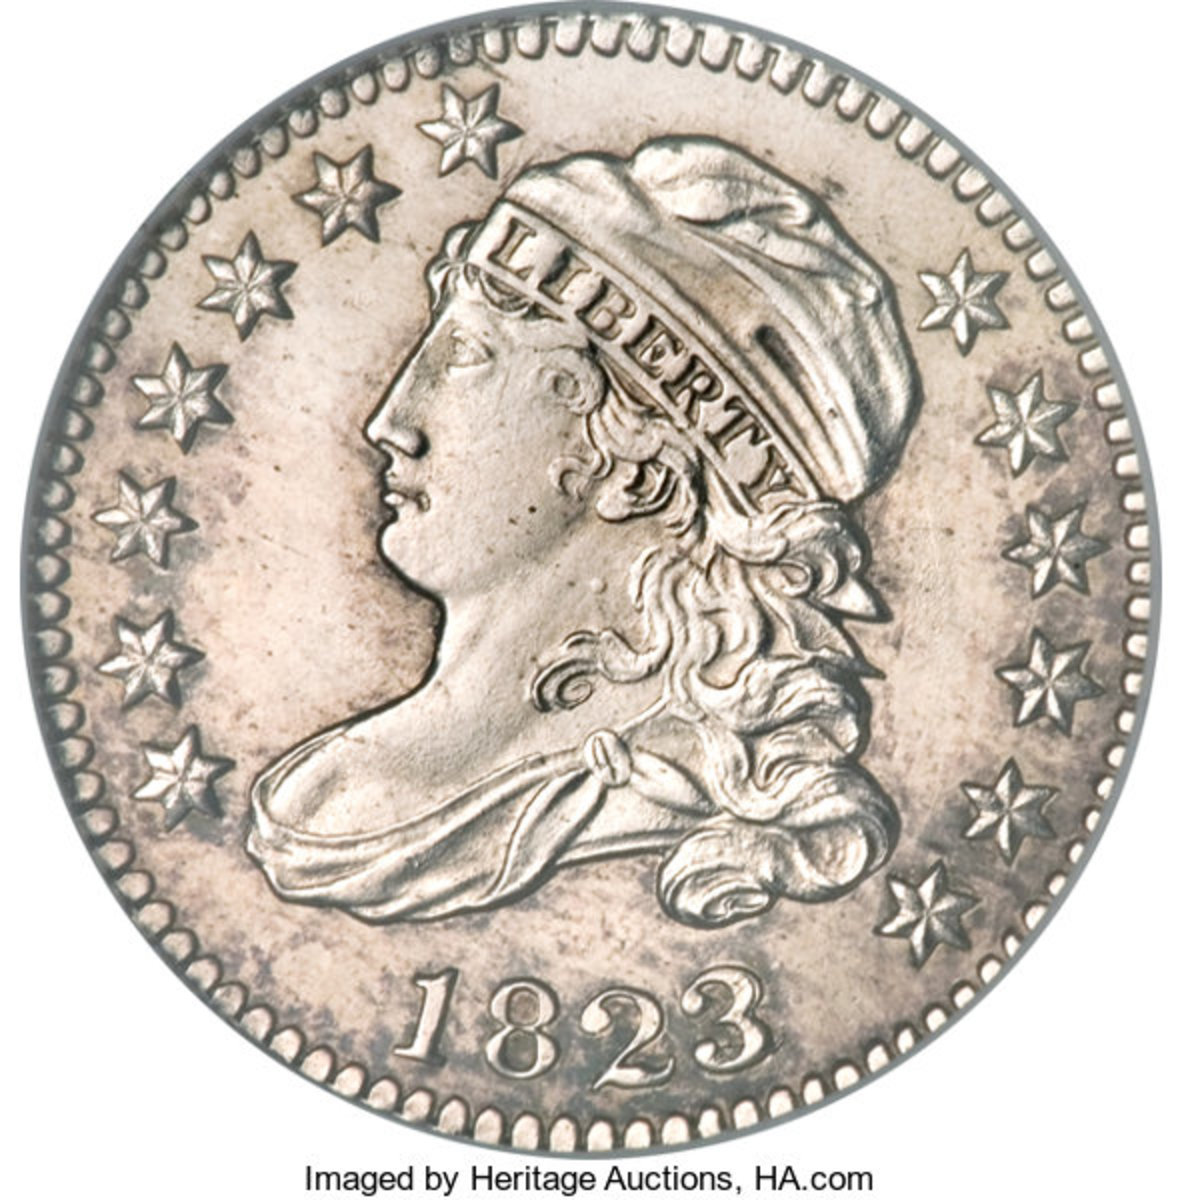 Shown is an 1823 10C Large Es is NGC graded MS66 from the Joseph C. Thomas Collection. (Image courtesy of Heritage Auctions.)